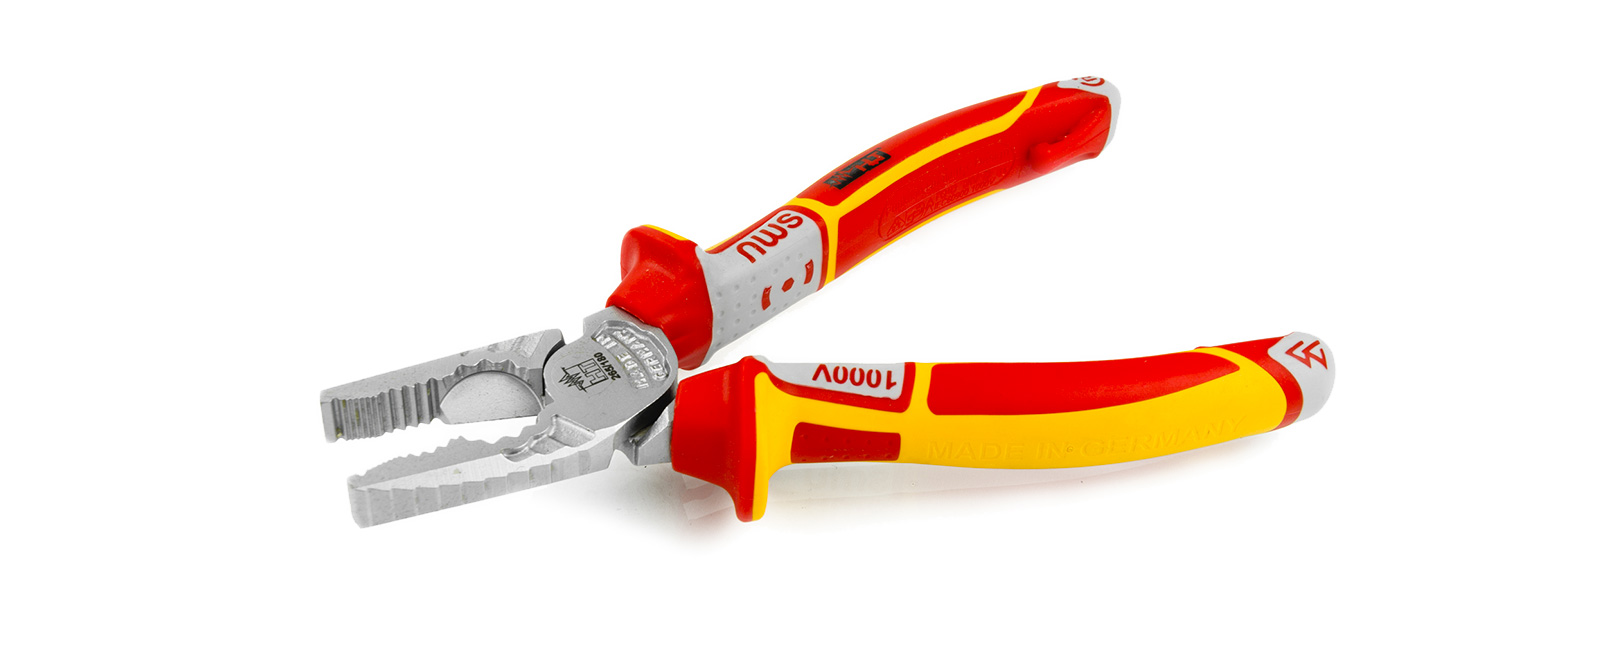 1000V Insulated pliers